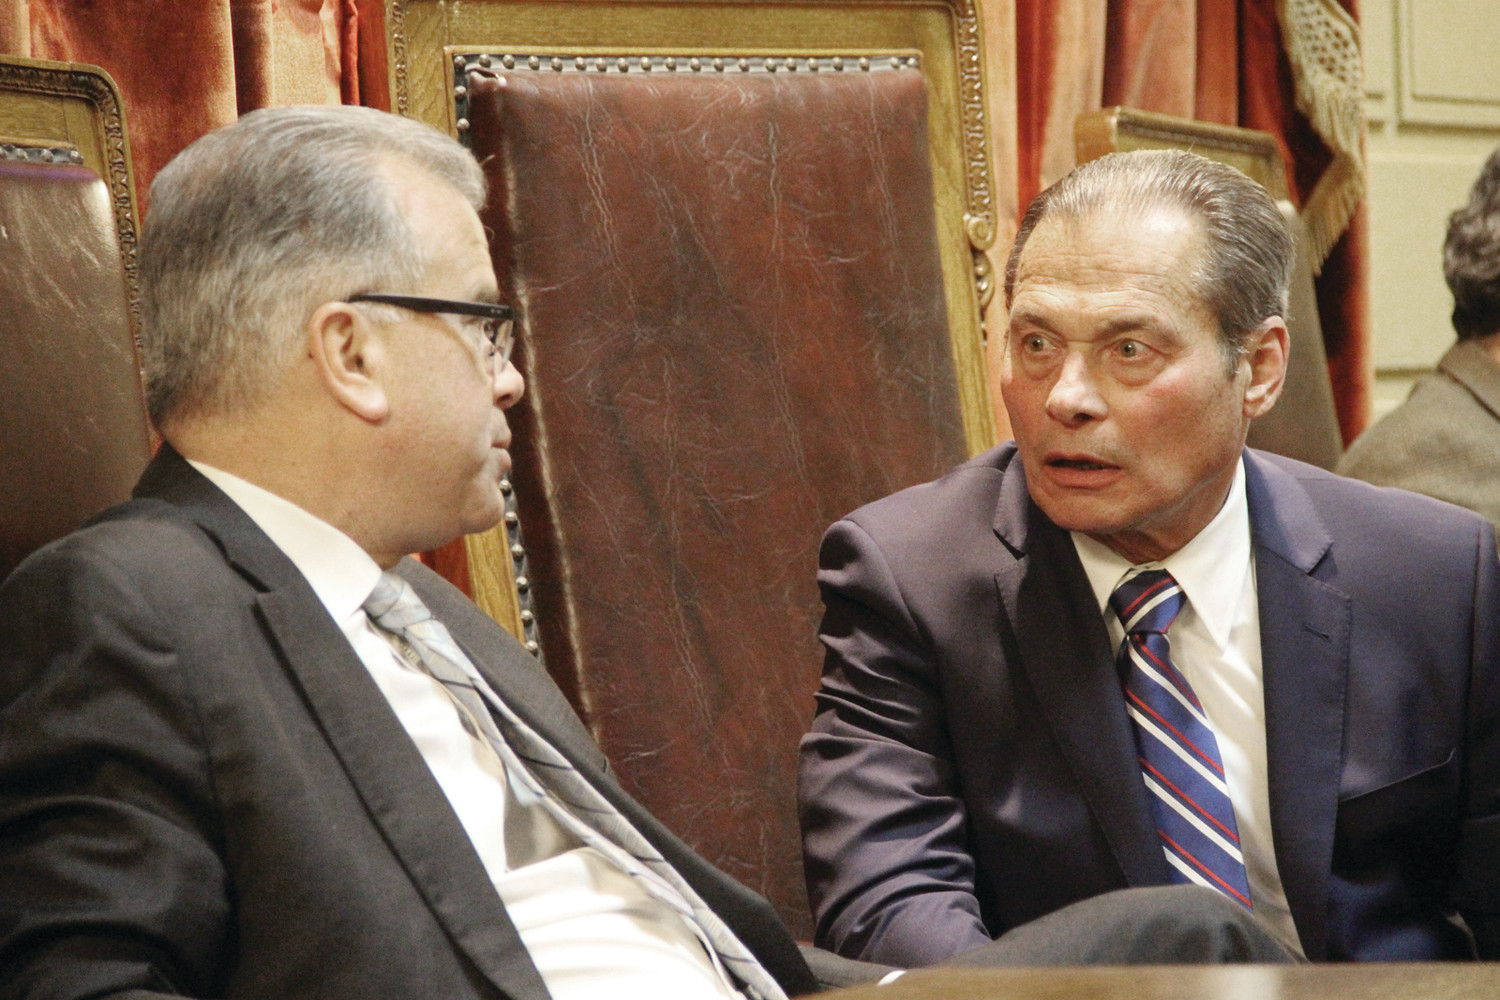 TETE A TETE: House Speaker Nicholas Mattiello and Senate President Dominick Ruggerio, who have been at odds in recent weeks over the proposal to build a PawSox Stadium, confer prior to the governor's arrival at her State of the State address Tuesday.